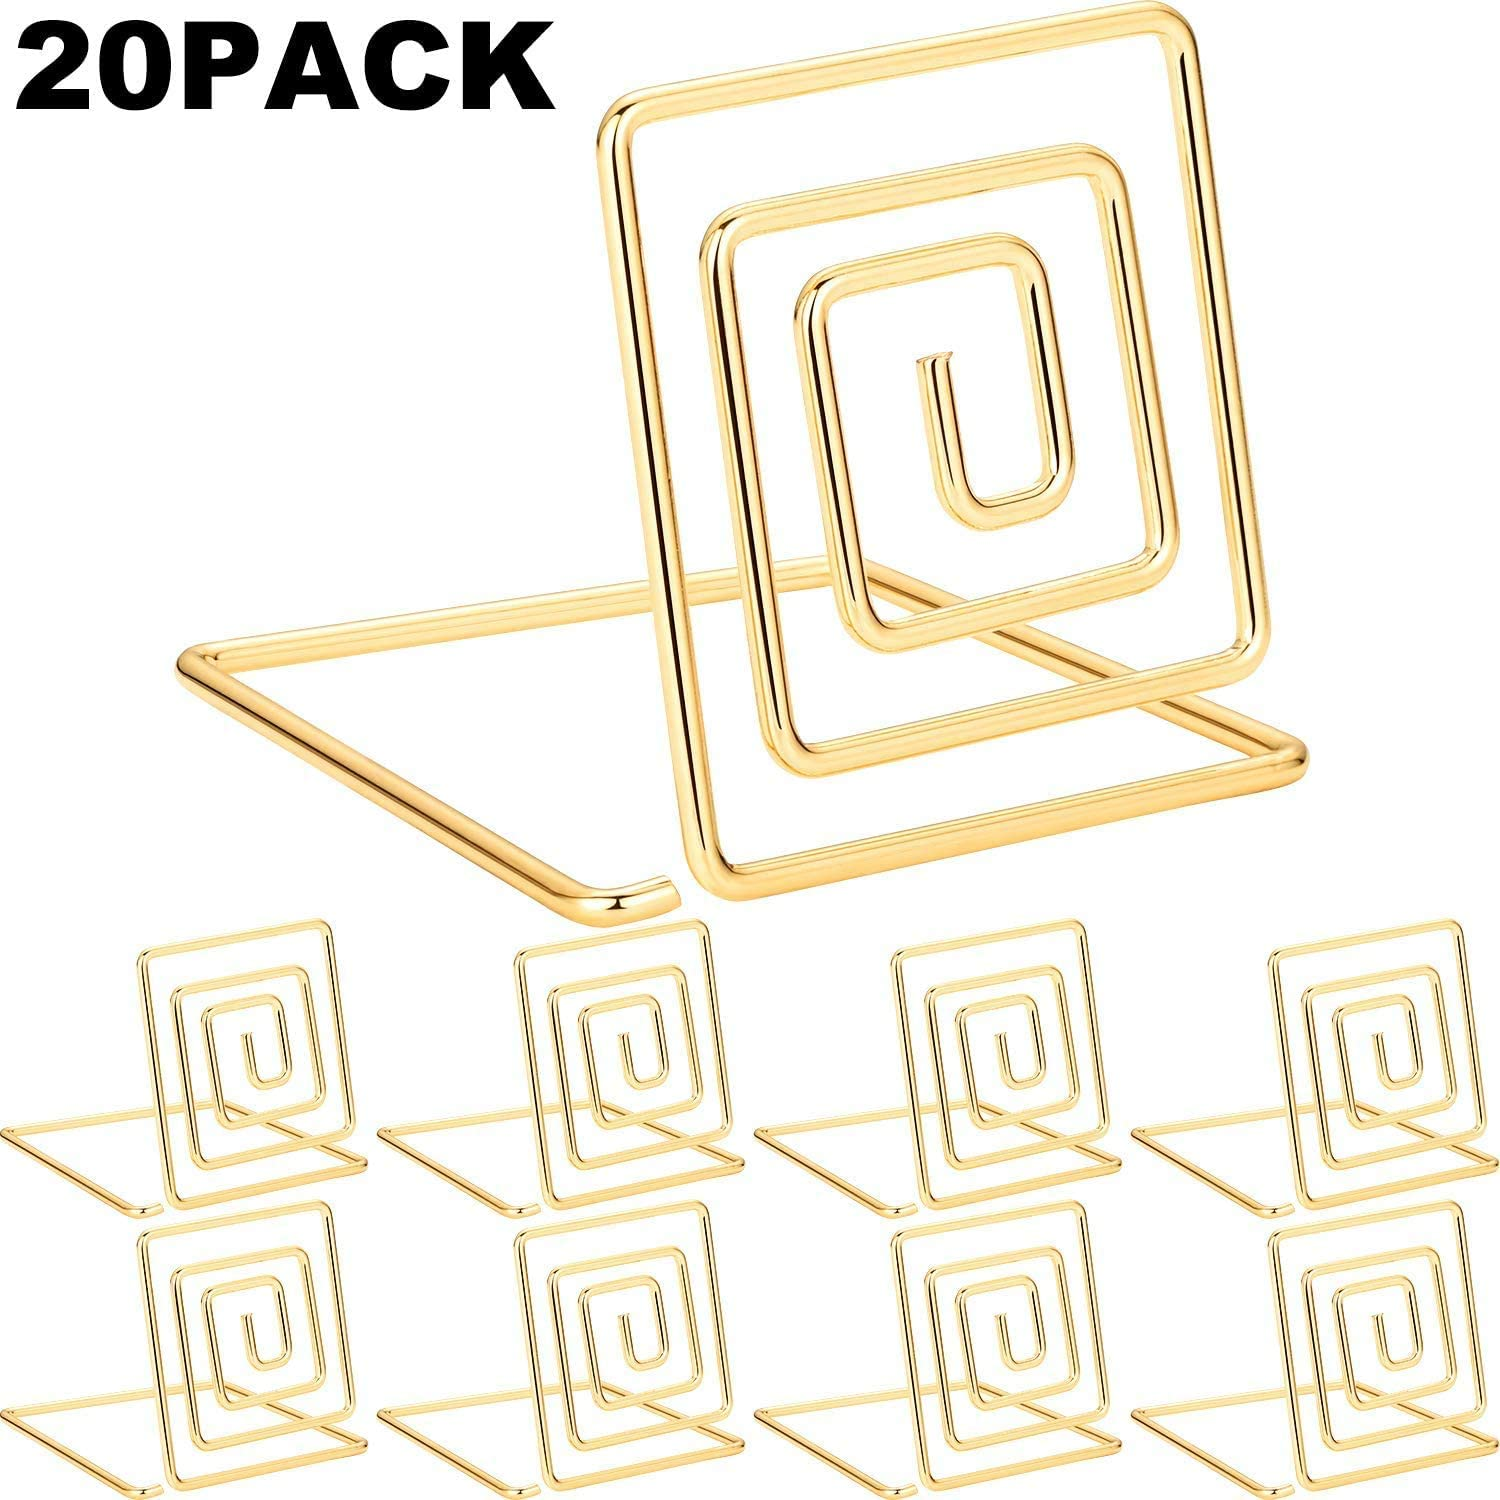 Amazon Com Chuangdi 20 Pieces Wire Place Card Holder Metal Card Holder Stand Wedding Name Place Holder For Weddings Dinner Parties Food Signs Style 1 Gold Color Home Kitchen